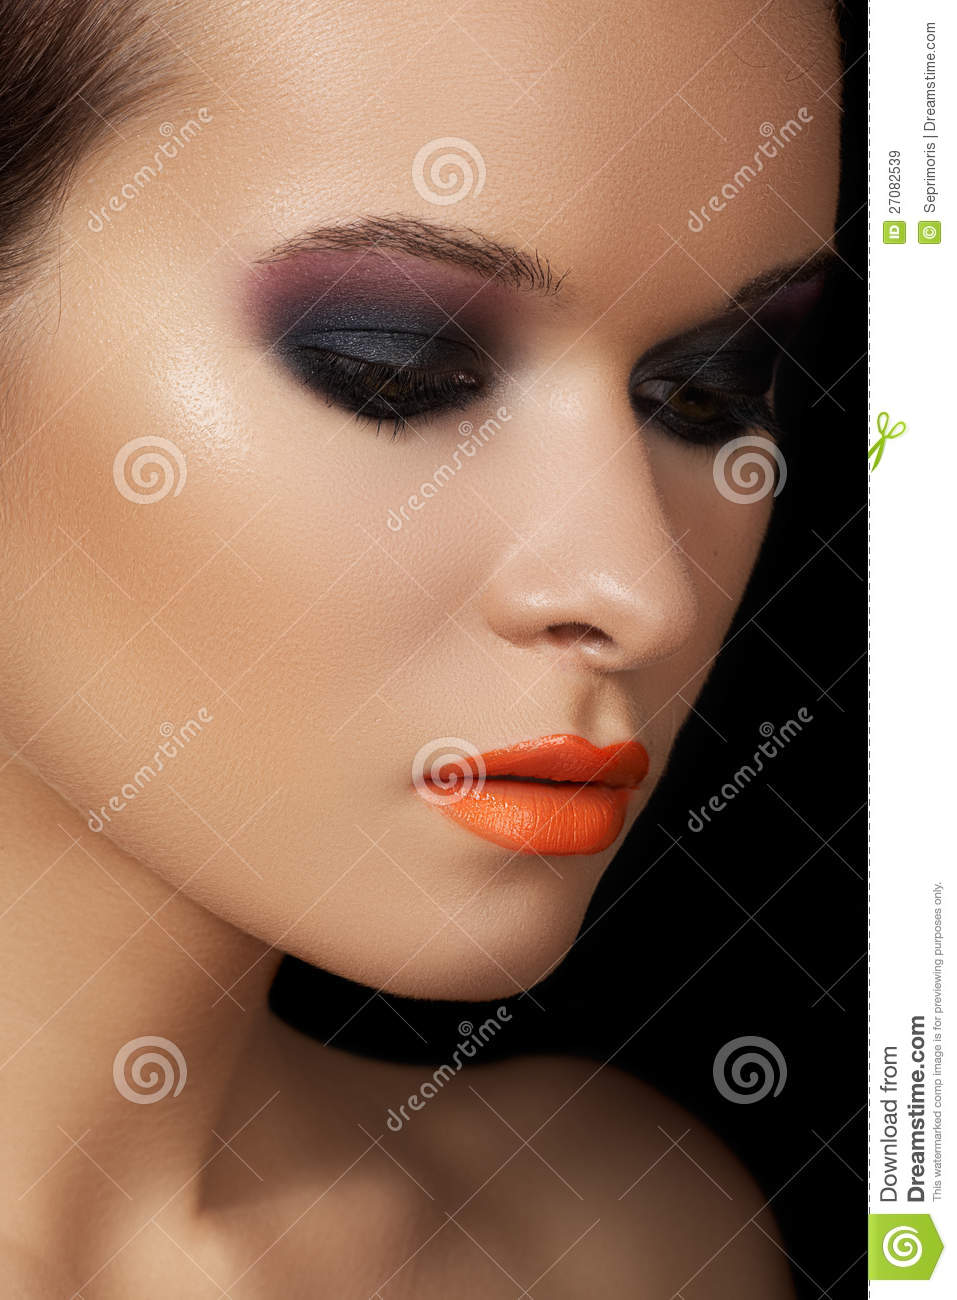 ed83c0c4295 Close-up Beauty Portrait Of Attractive Model Face Stock Image ...